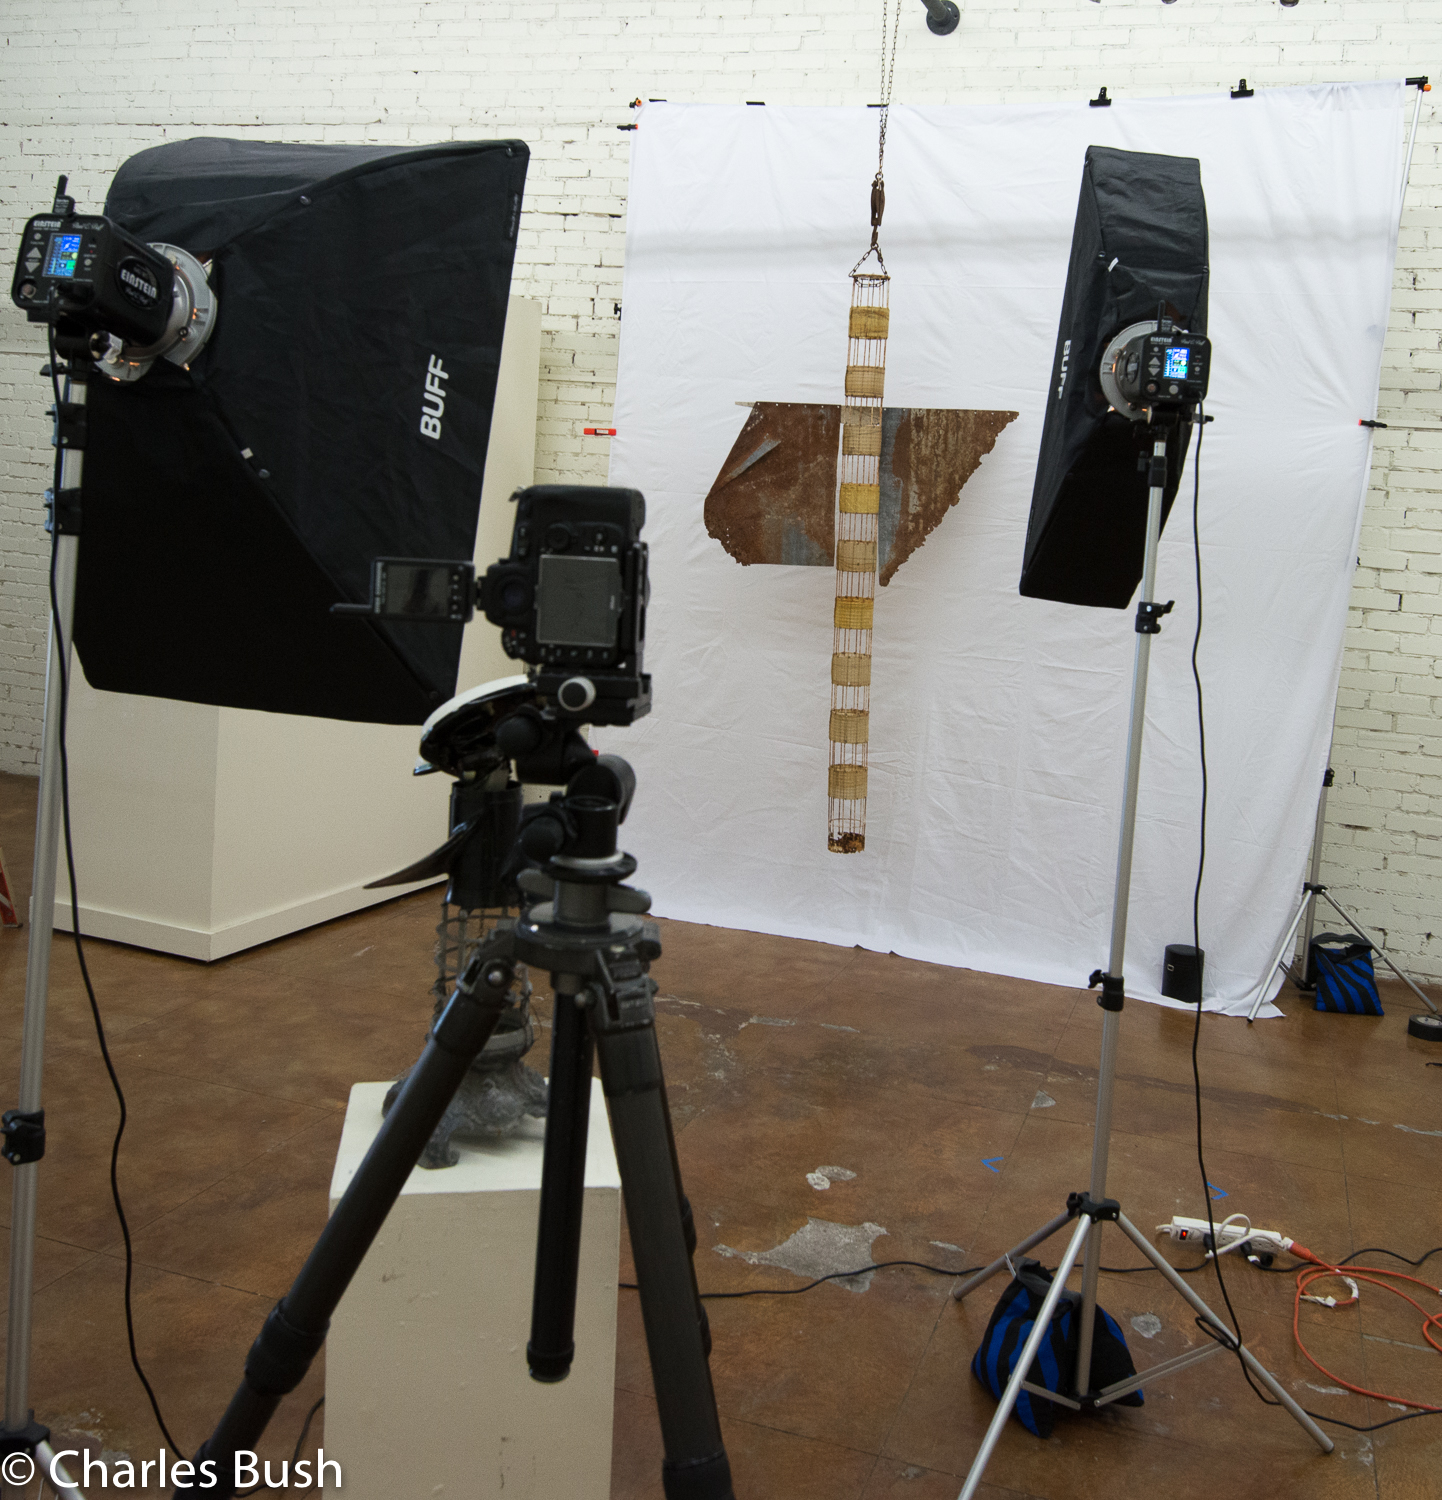 Set up for Photographing Sculpture